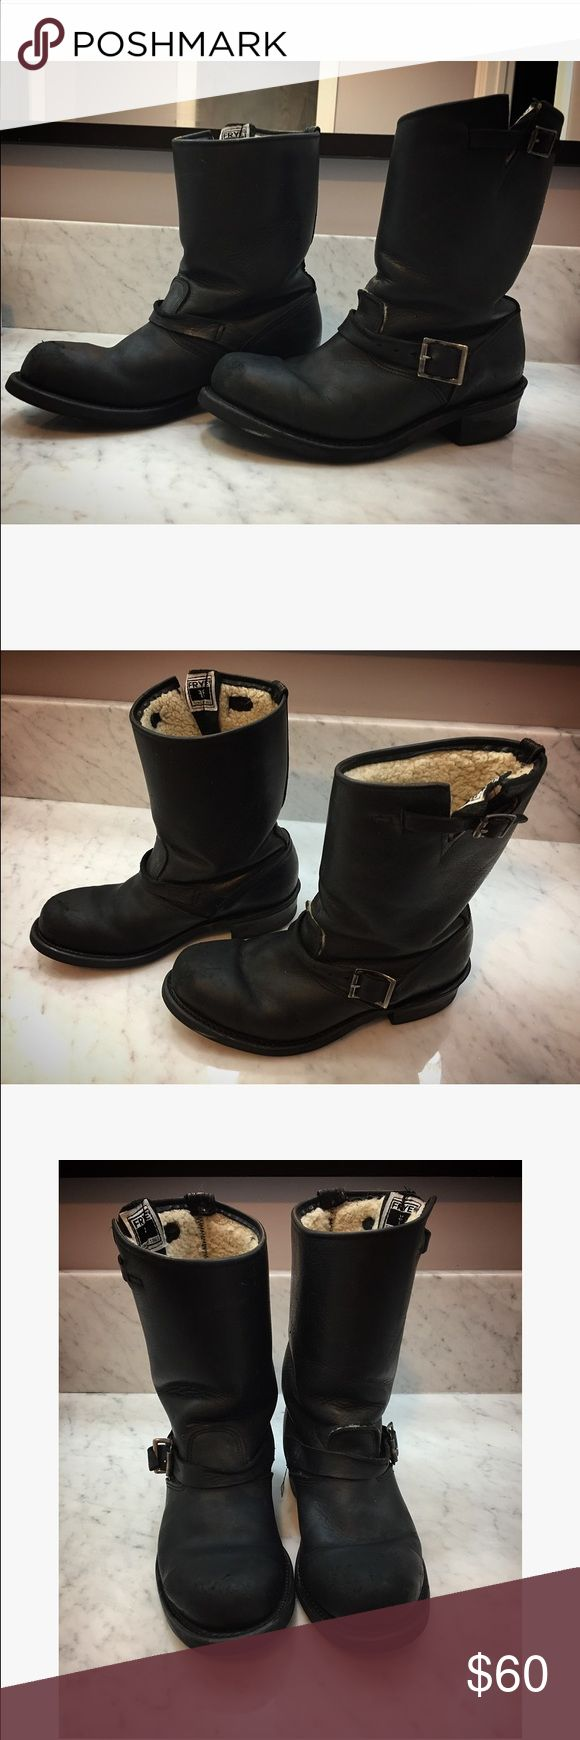 frye engineer boots lined with shearling frye engineer boots lined with shearling, leather, frye boots last forever, size 8, Frye Shoes Combat & Moto Boots